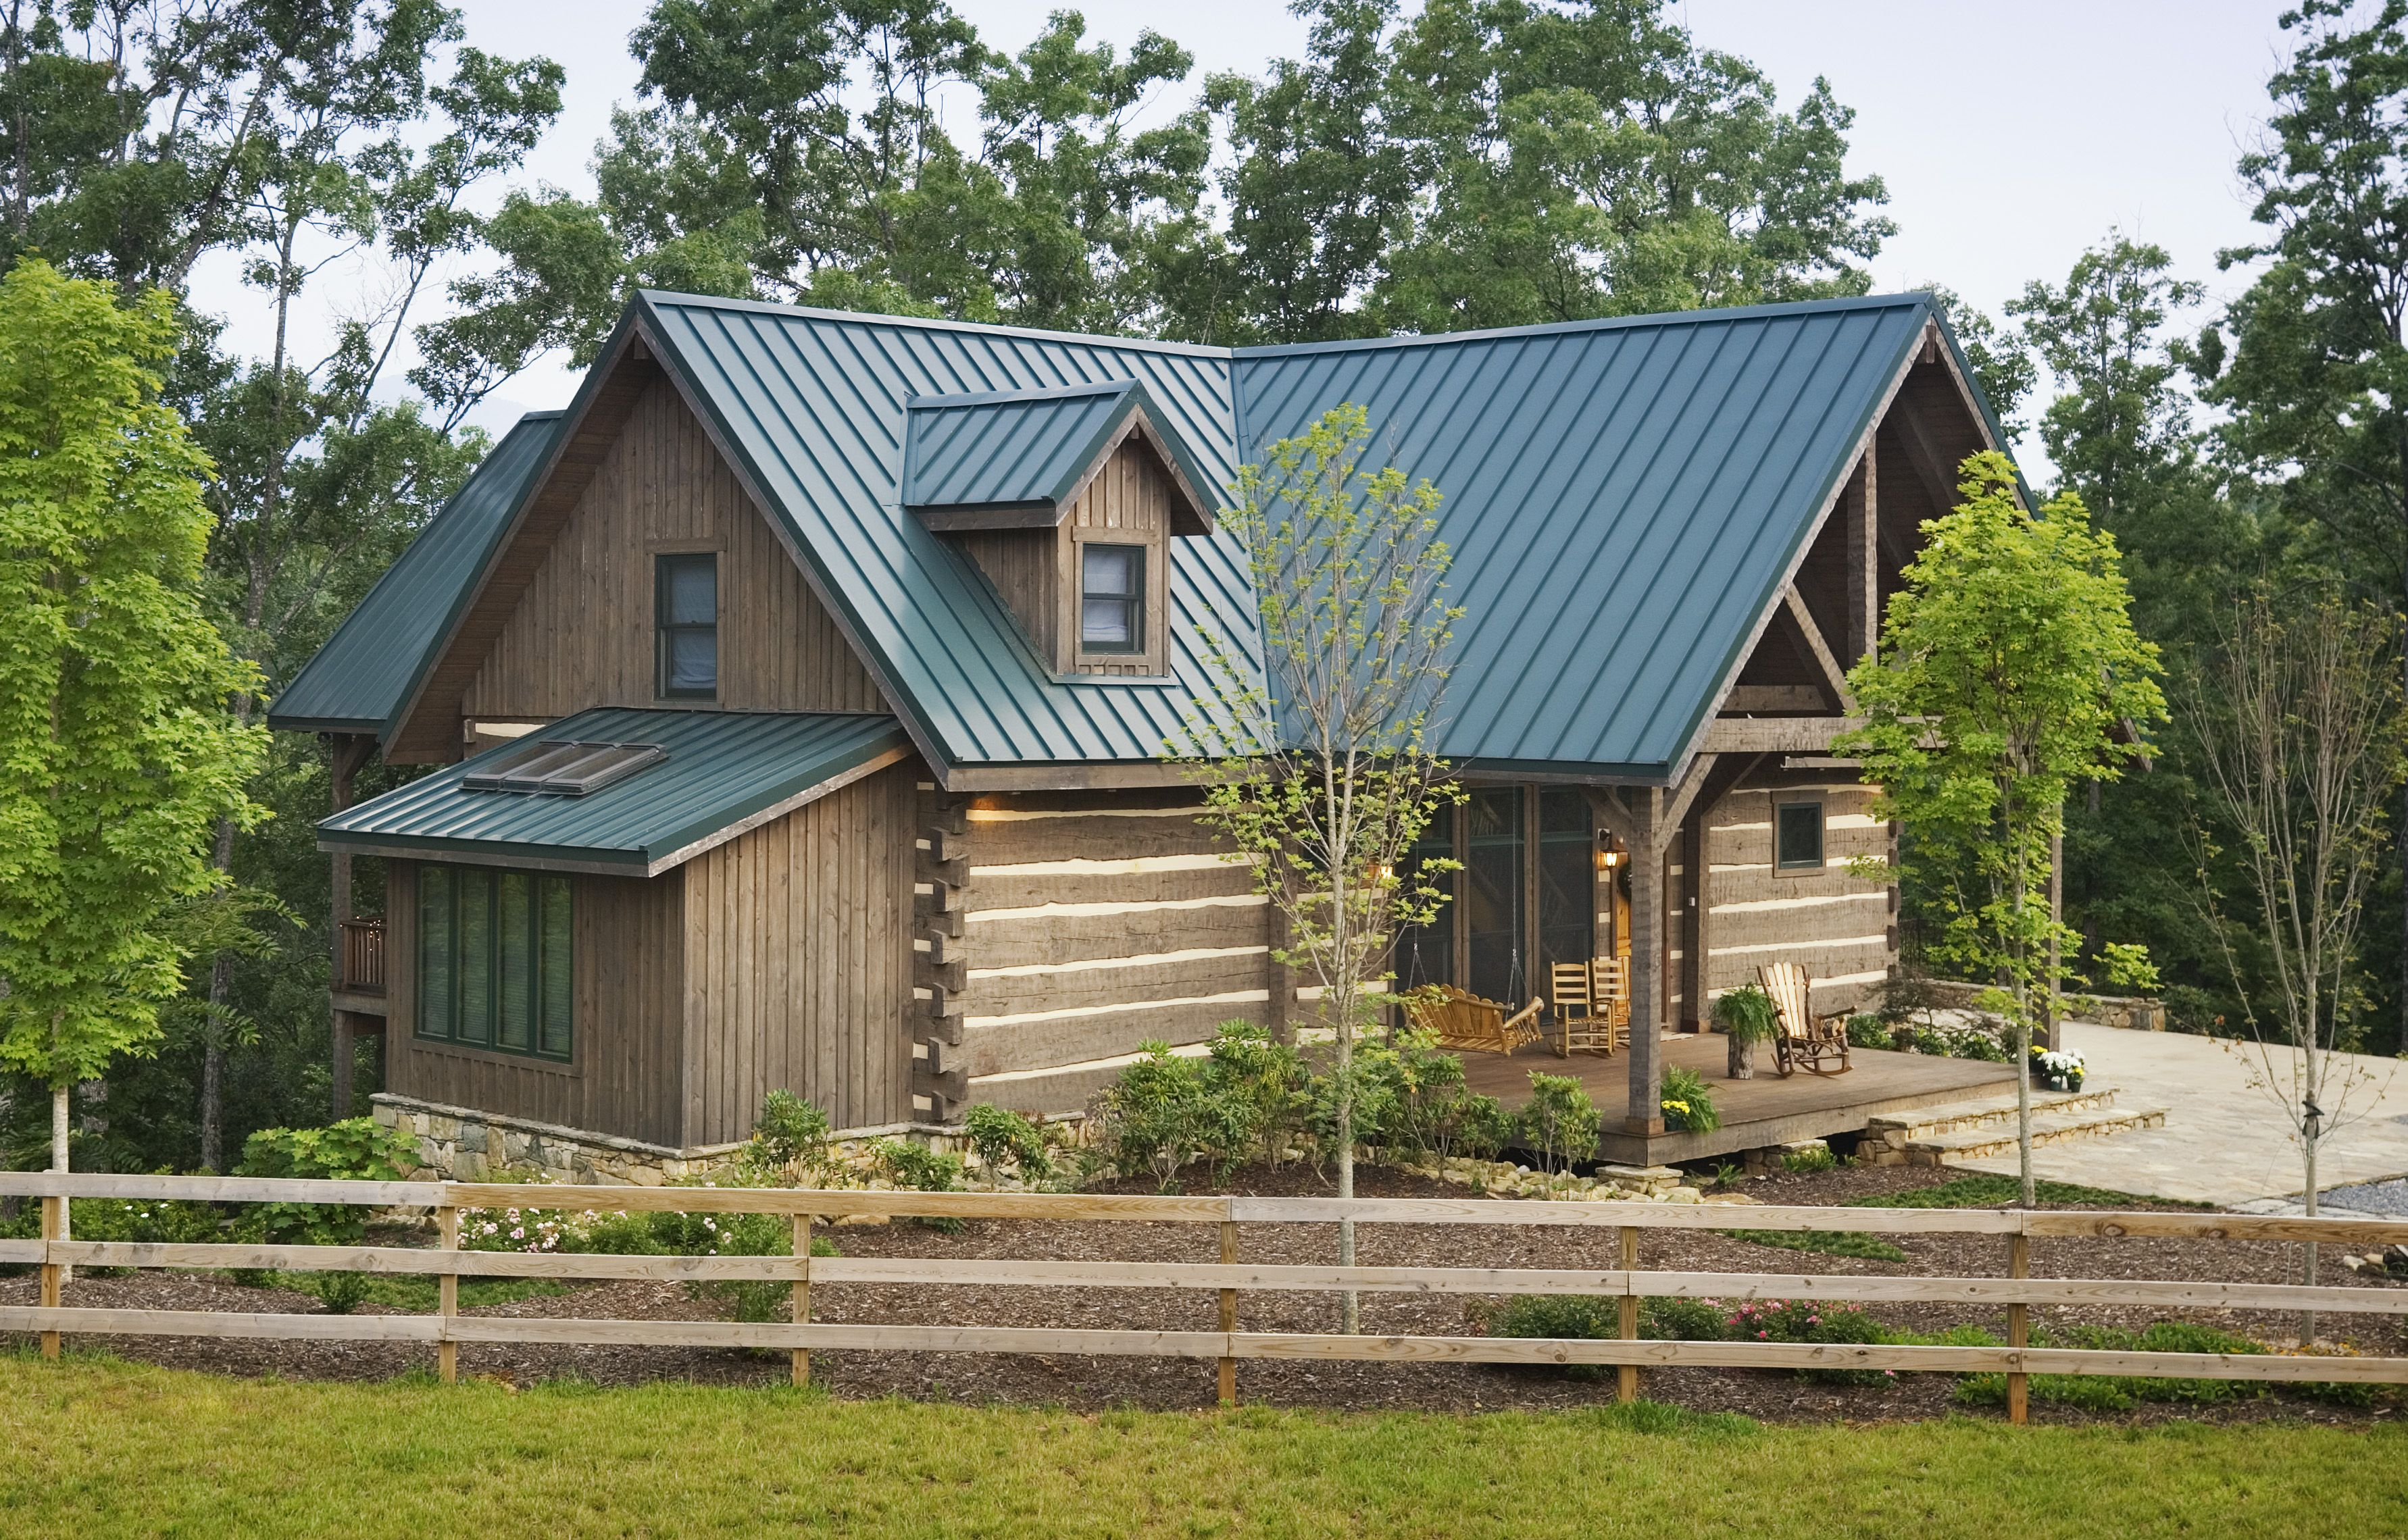 Lifeline ultra 2 gentry gray log home stain log home for How to stain log cabin